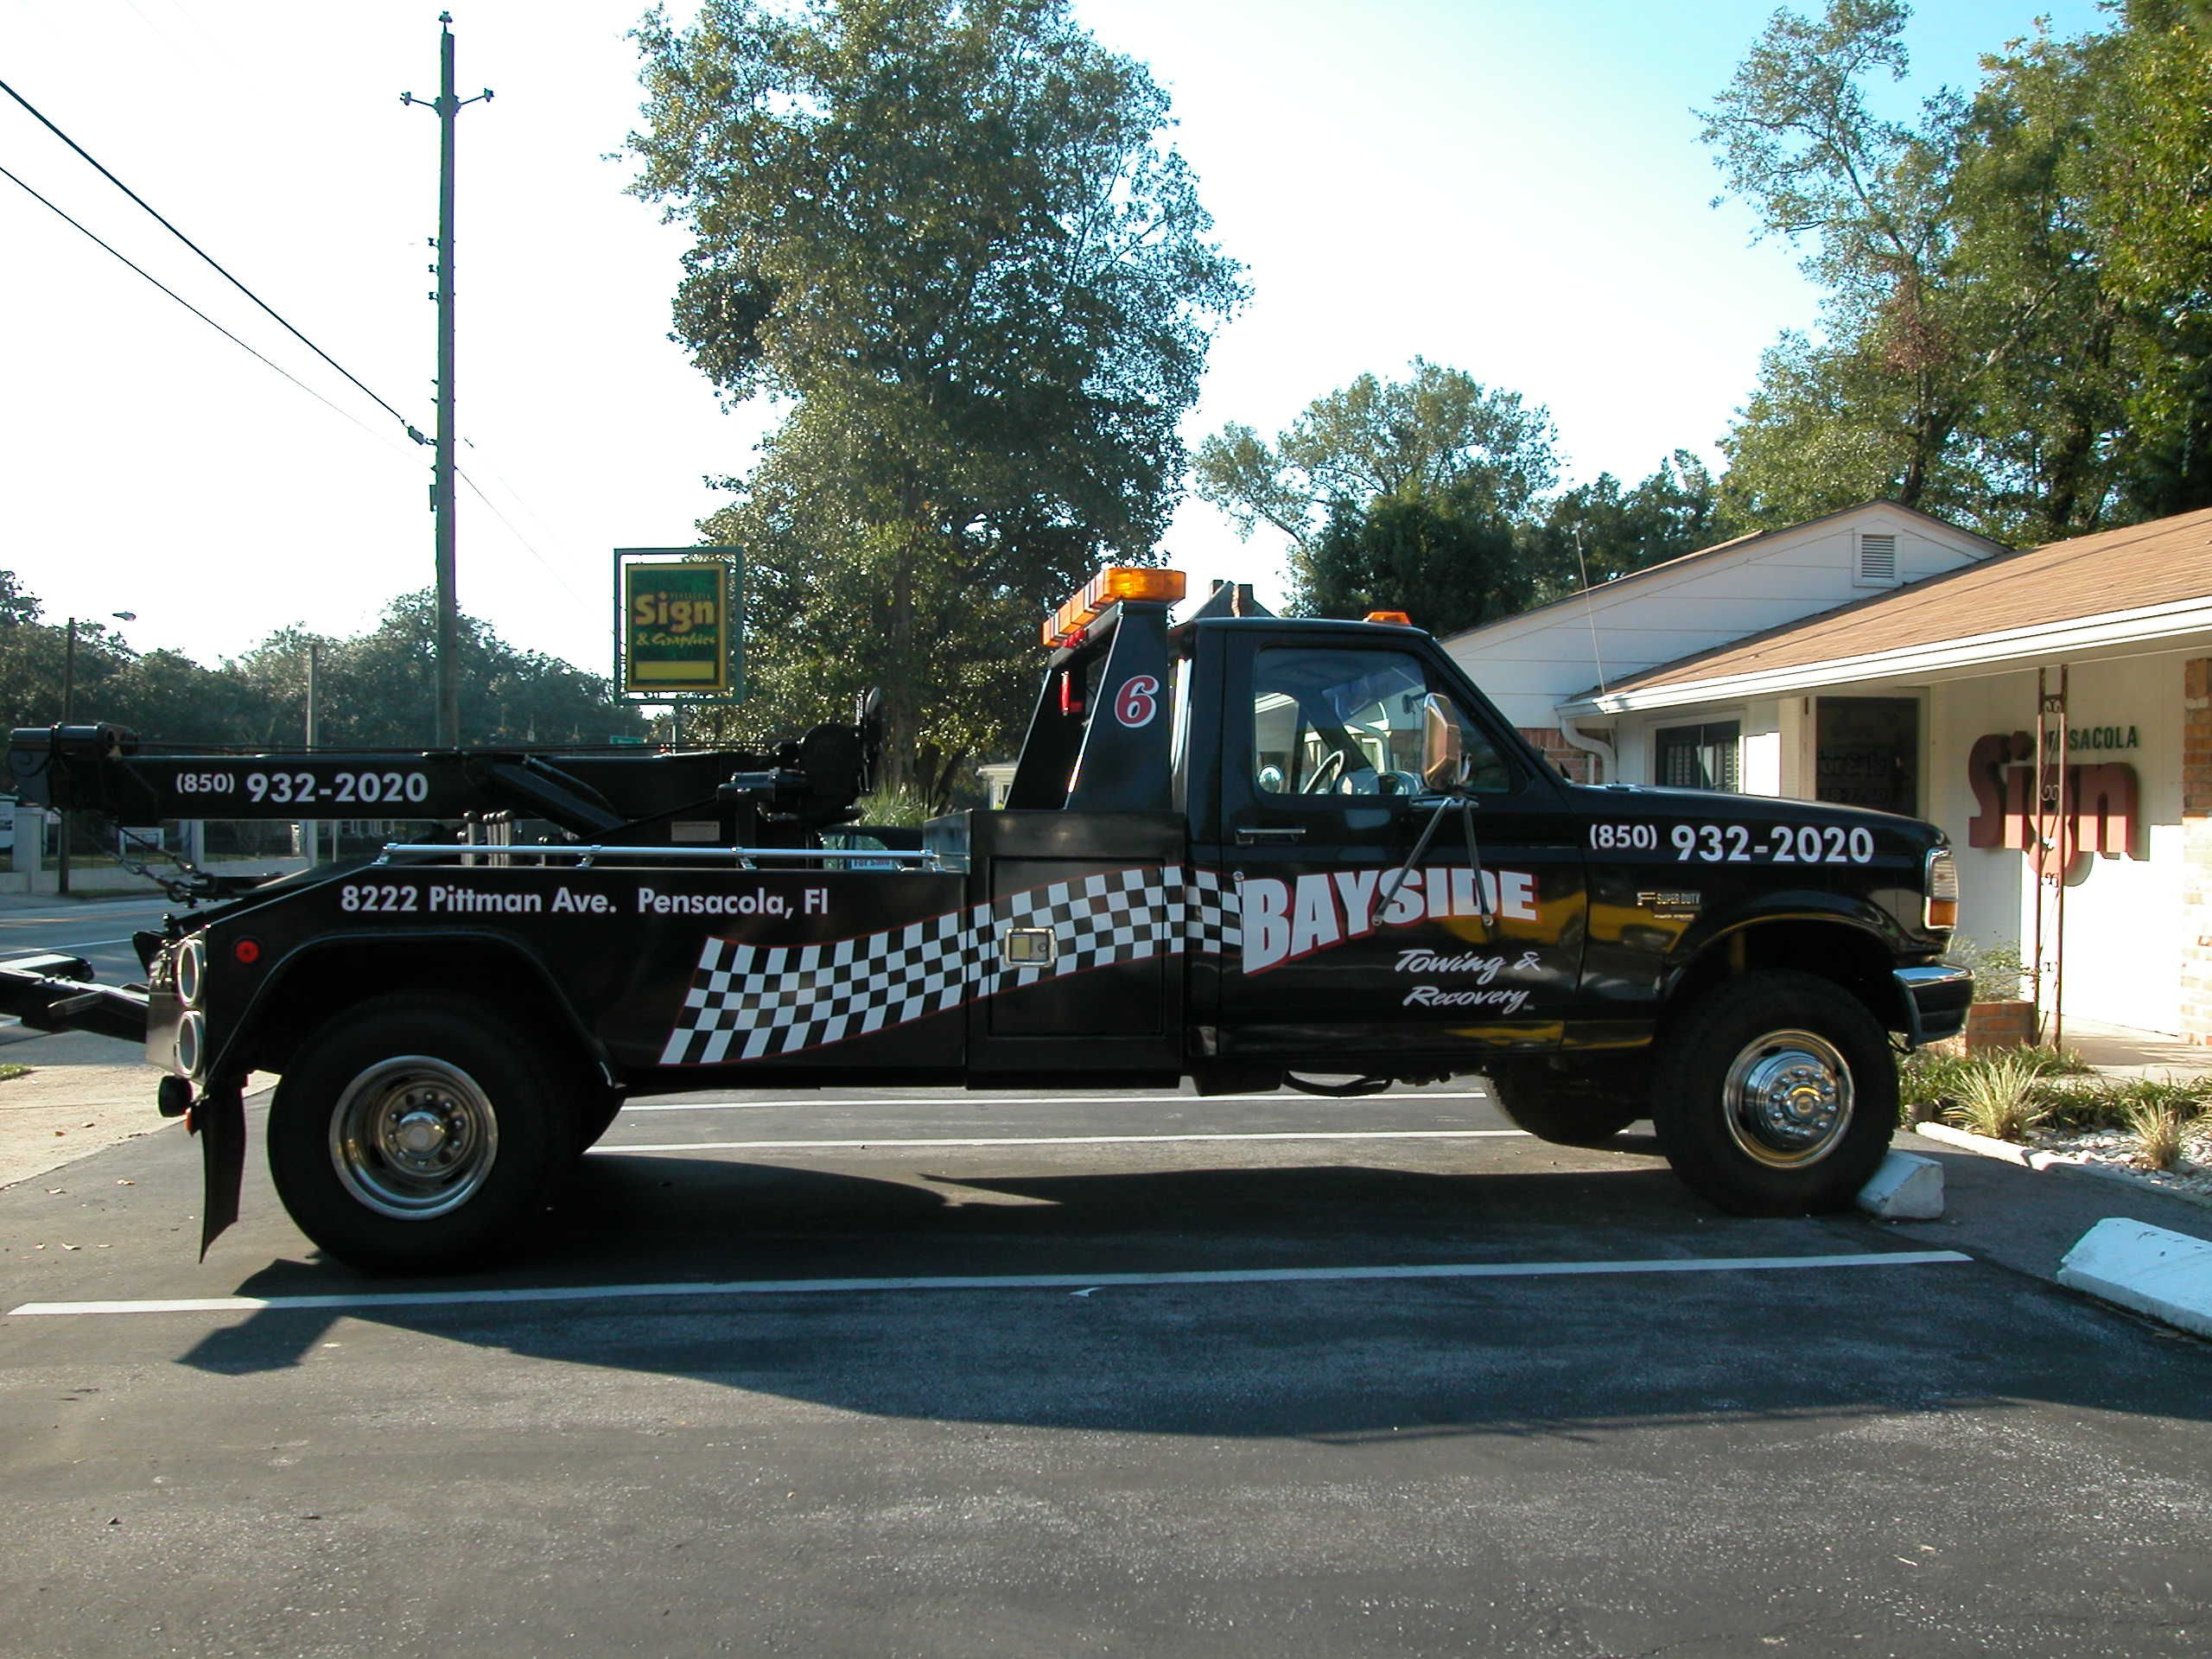 Tow Truck Graphics For Bayside Towing By Pensacola Sign In